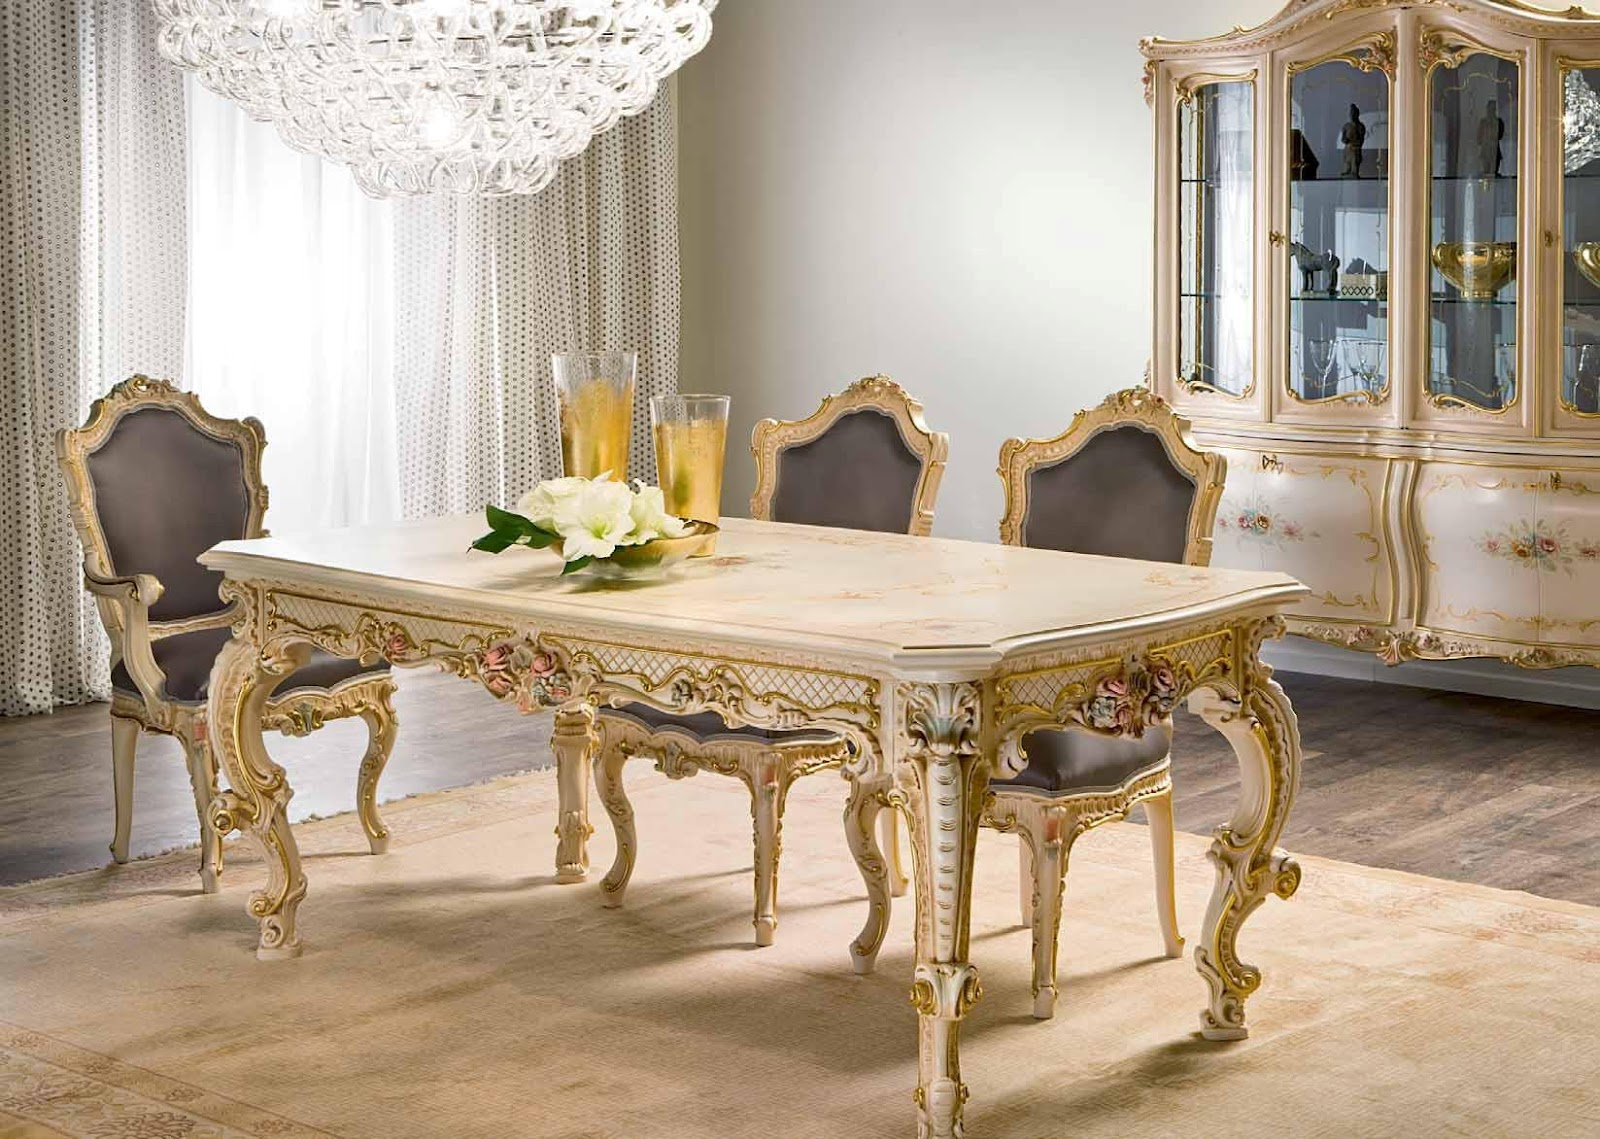 Antique French Furniture French Style Furniture Classical